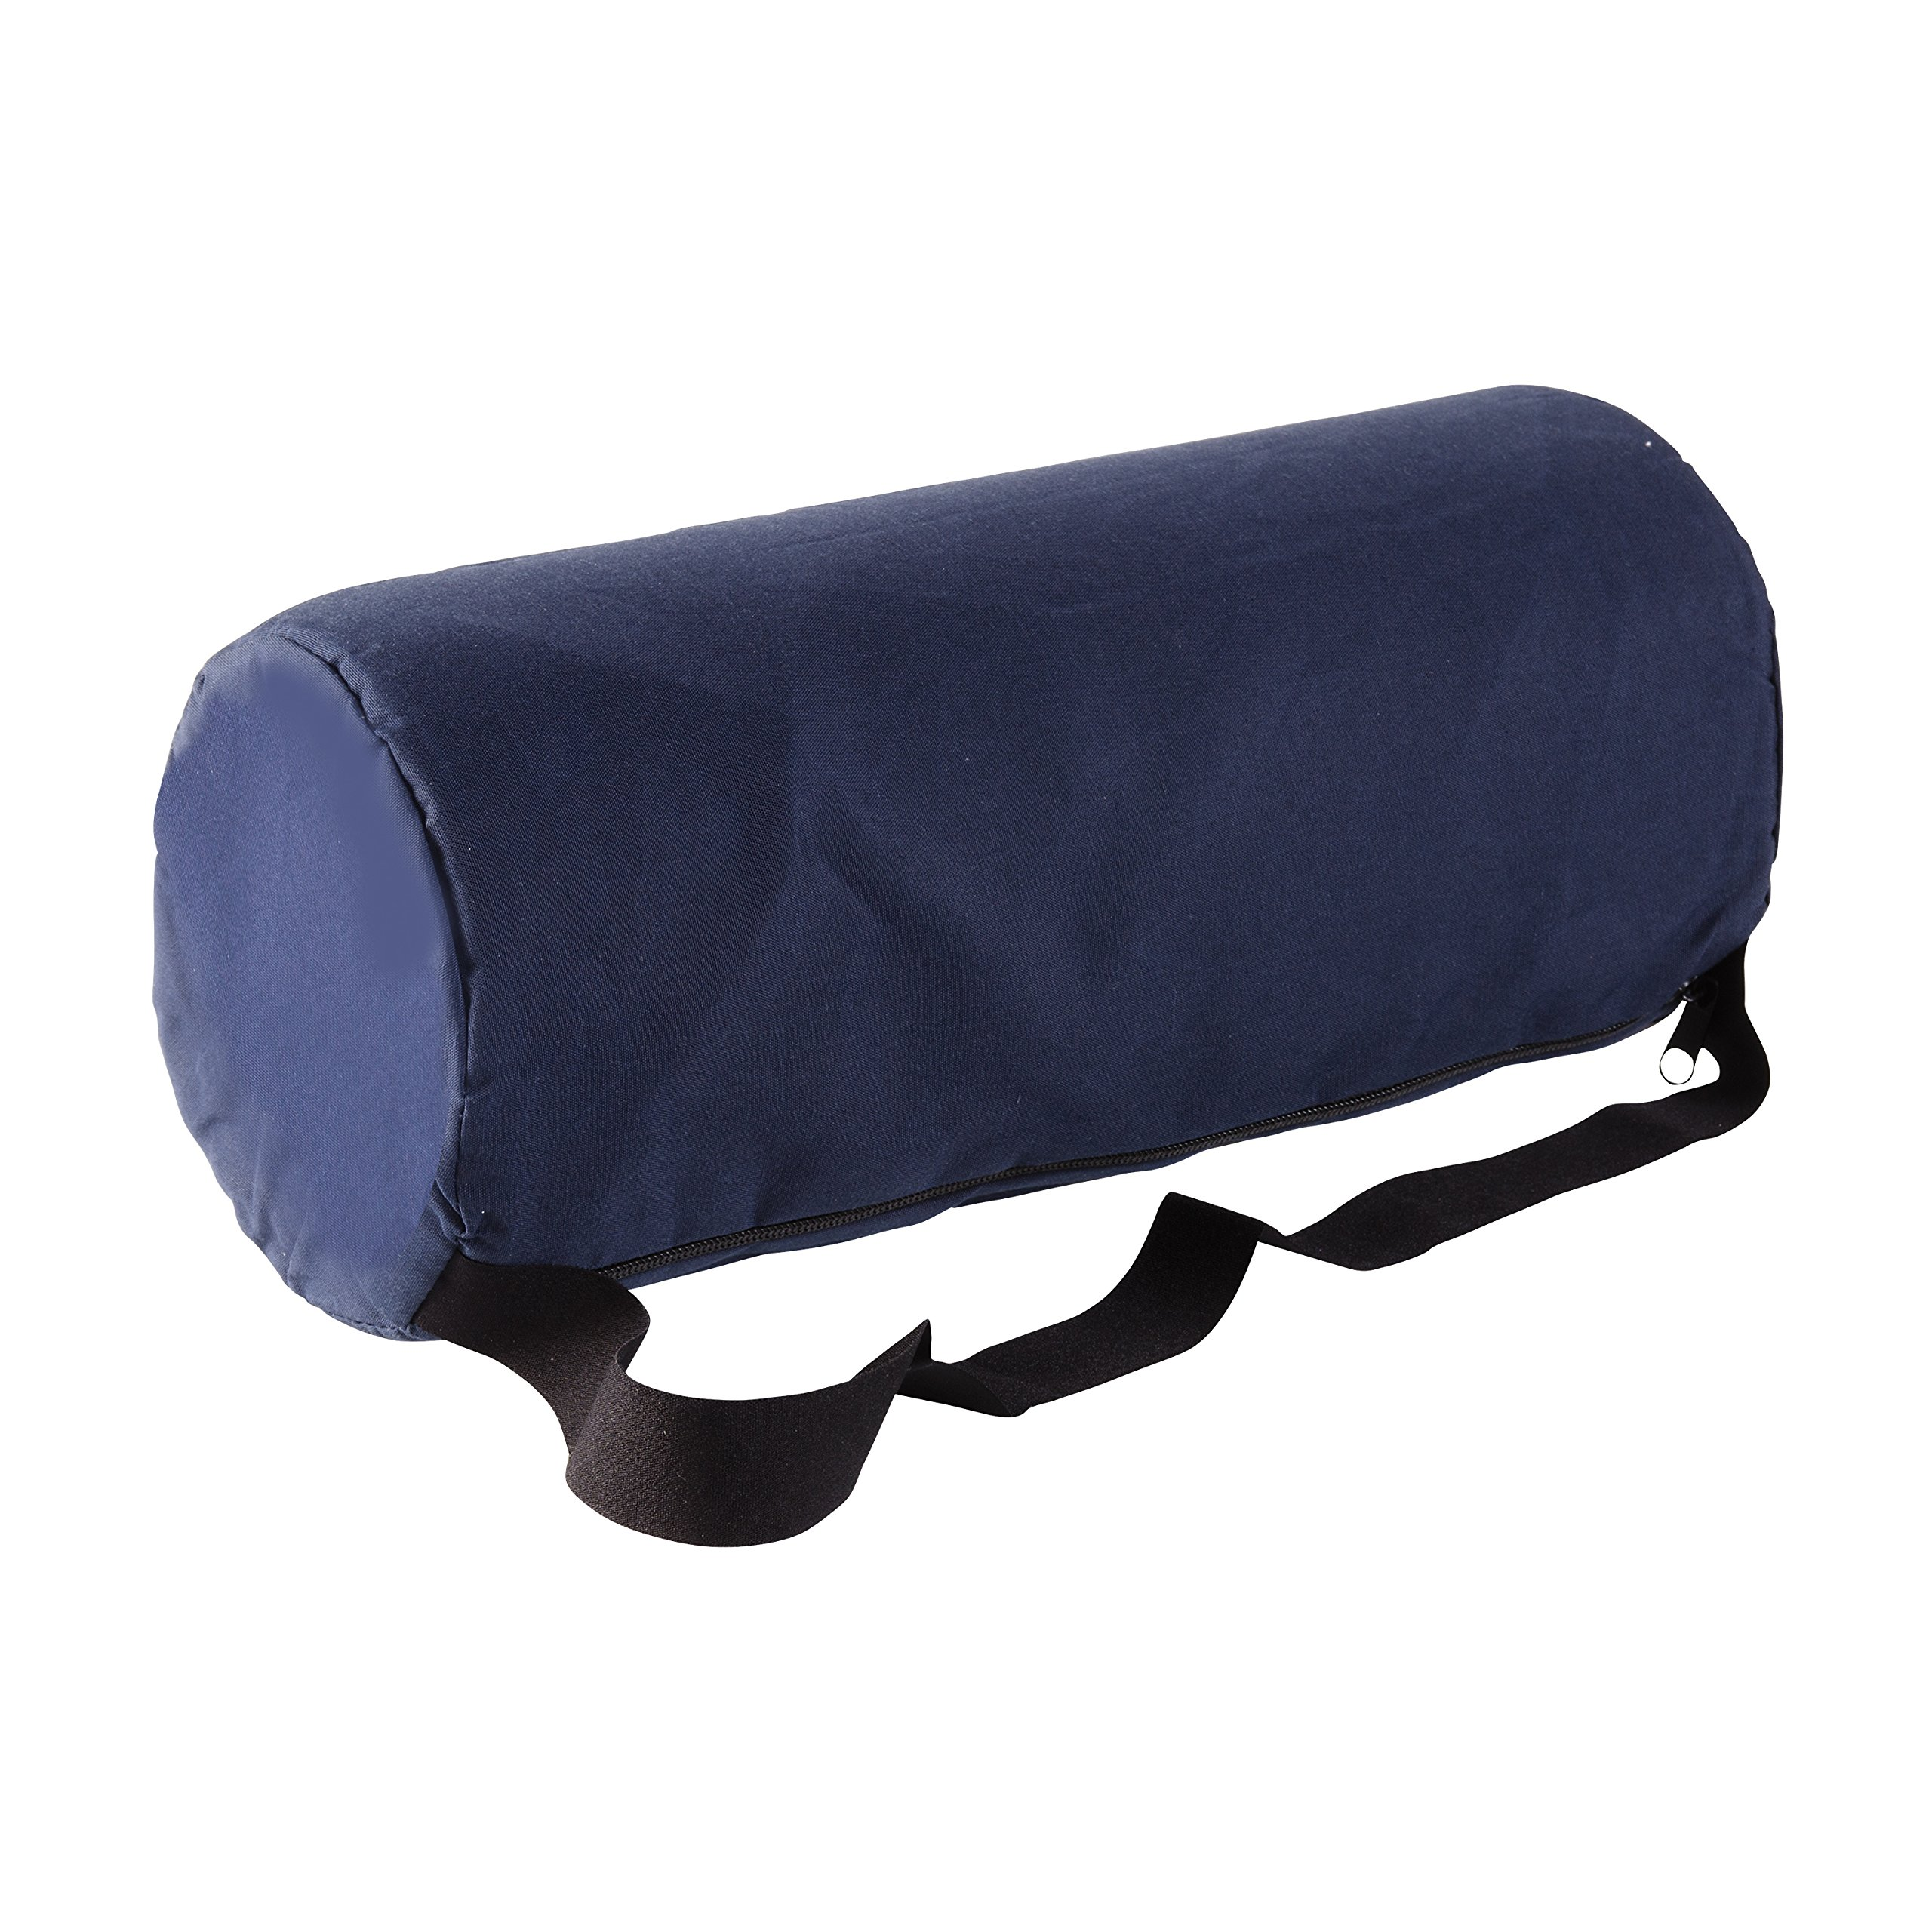 DMI Lumbar Roll Back Support Cushion Pillow - Foam Lumbar Cushion with Cover and Strap, Navy by Duro-Med (Image #8)